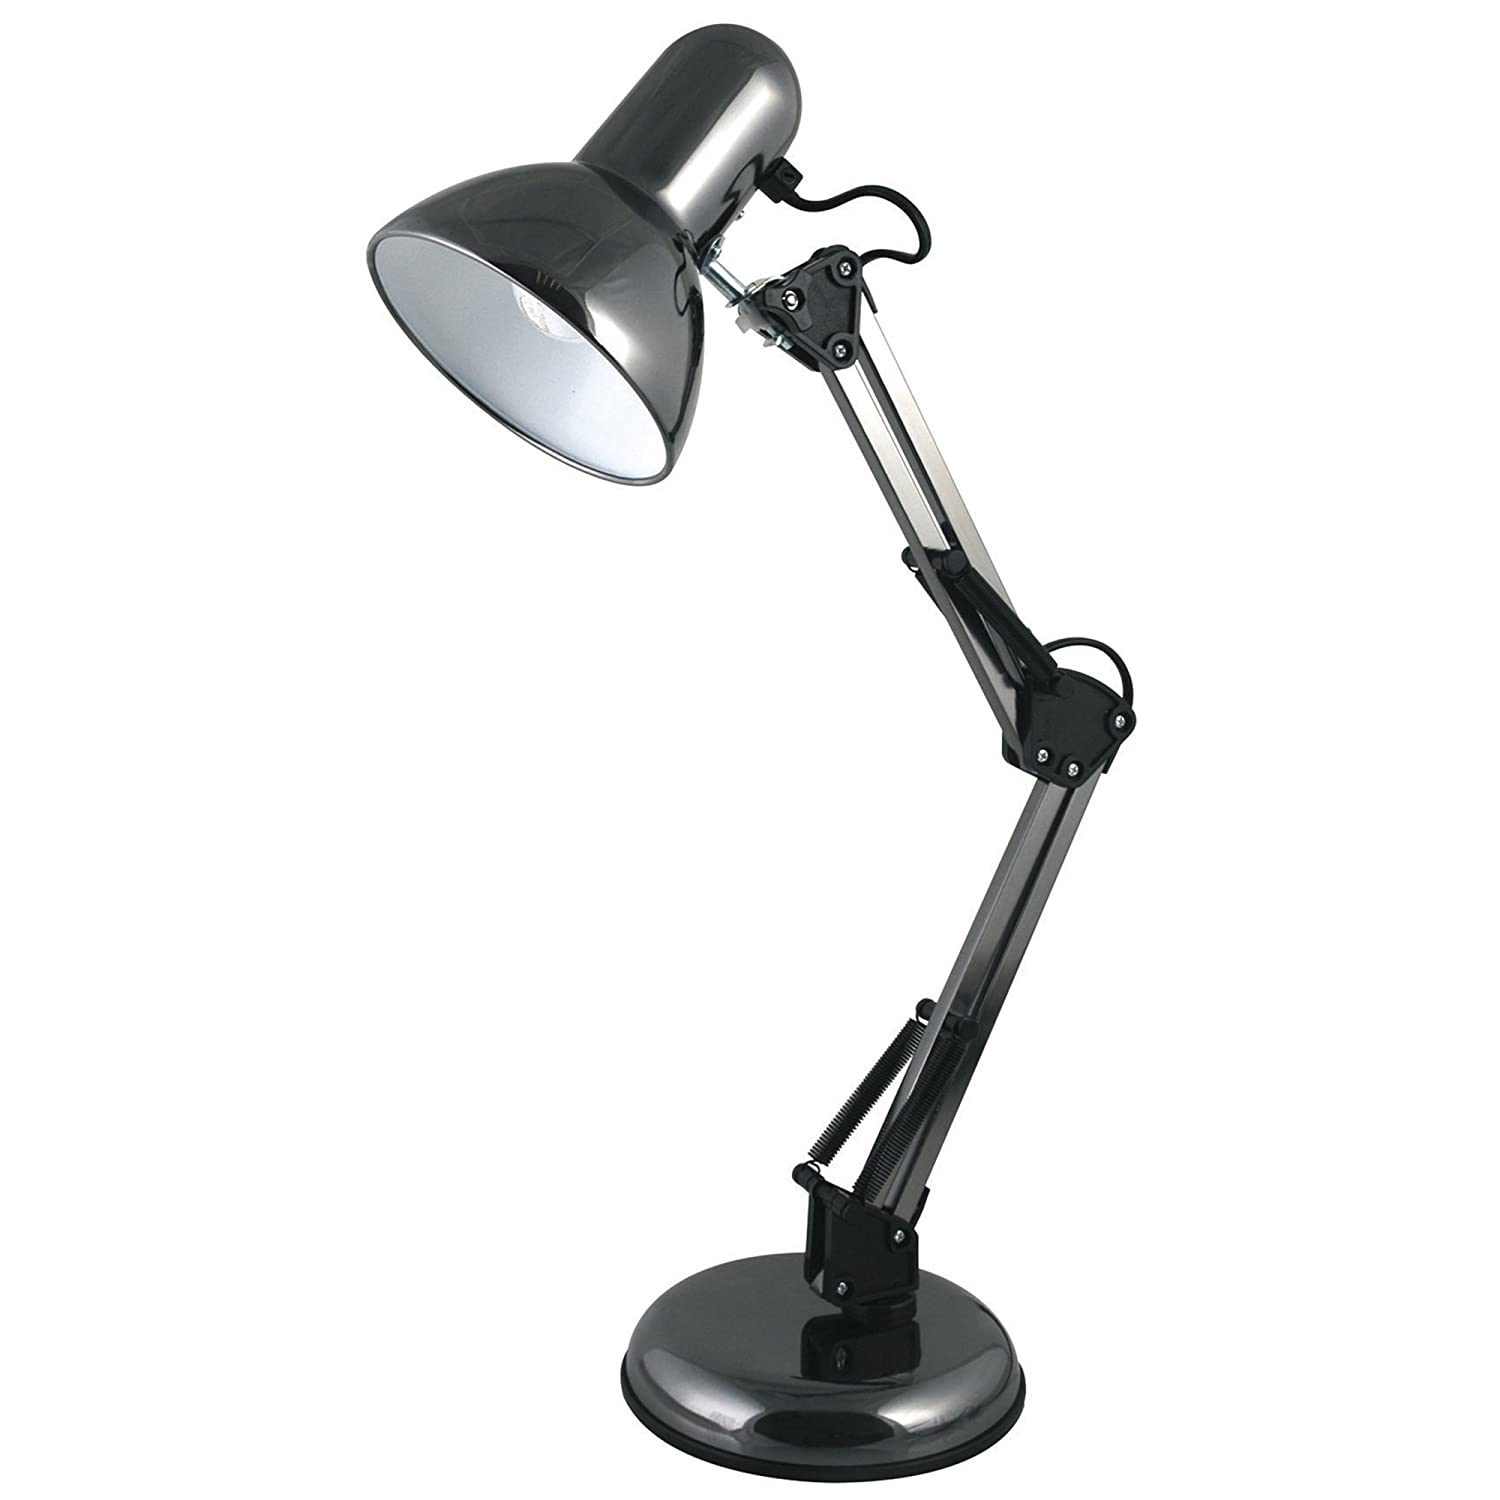 Marvelous Lloytron Style Poise Hobby Desk Lamp, L946BH 35w, Black: Amazon.co.uk:  Lighting